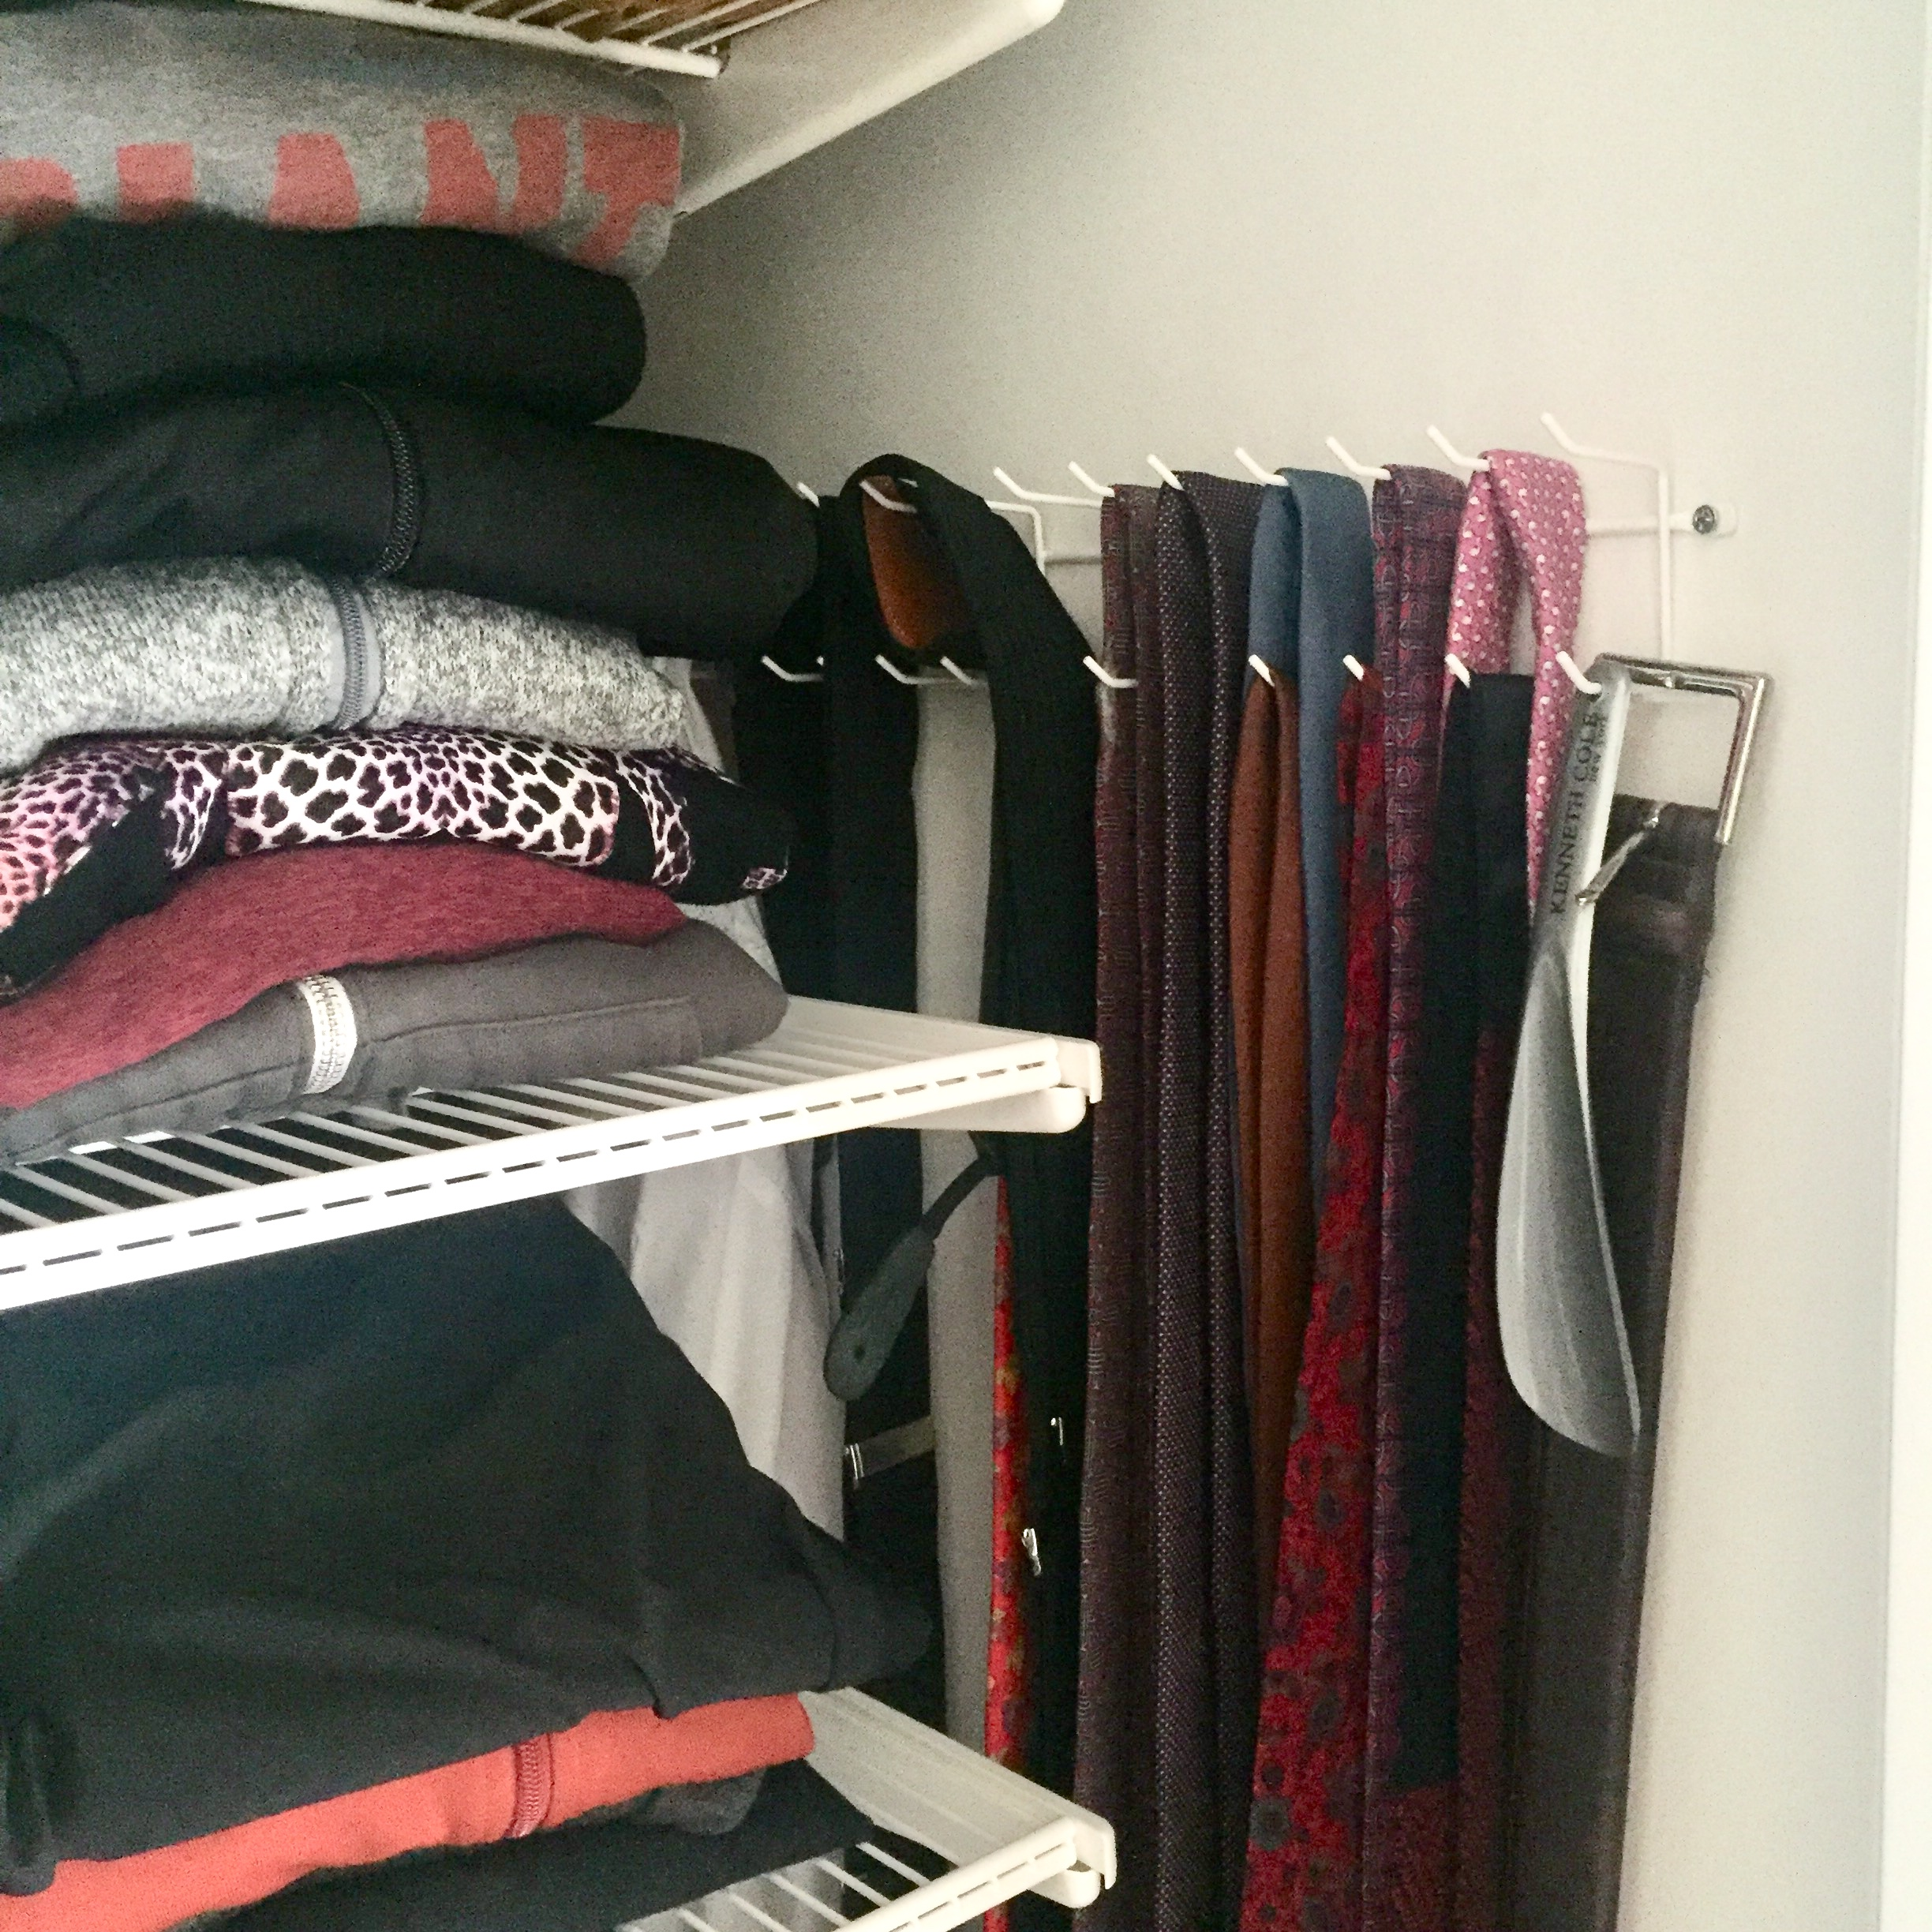 Hidden side hooks - If there's a nook in between your hanging clothing and the wall, add a set of hooks! I've got a set that I use for scarves and my robe and Tidy Husband has one for belts and ties.